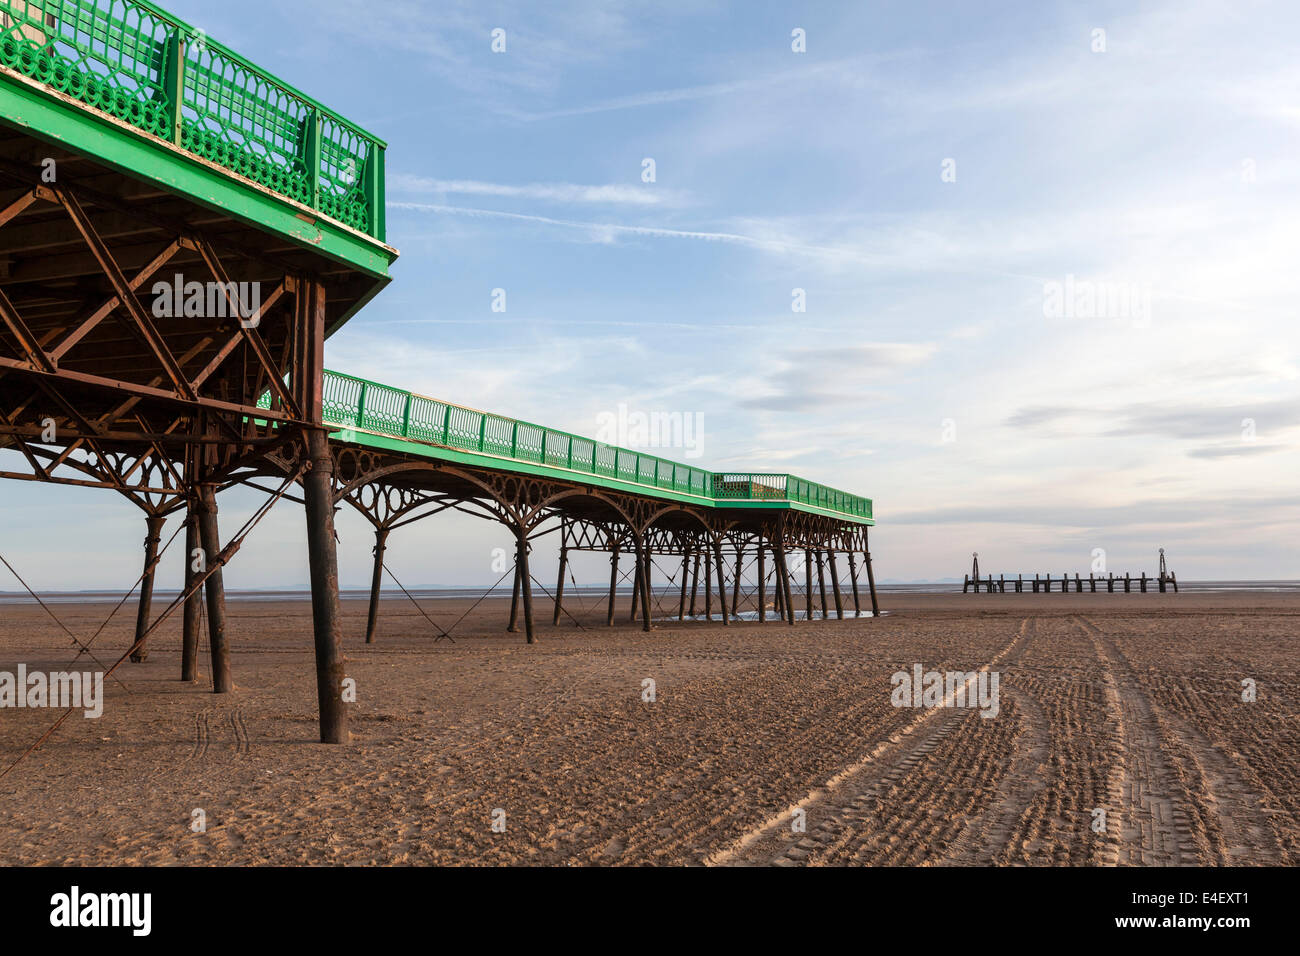 st-annes-pier-is-a-victorian-era-pleasure-pier-in-the-english-seaside-E4EXT1.jpg